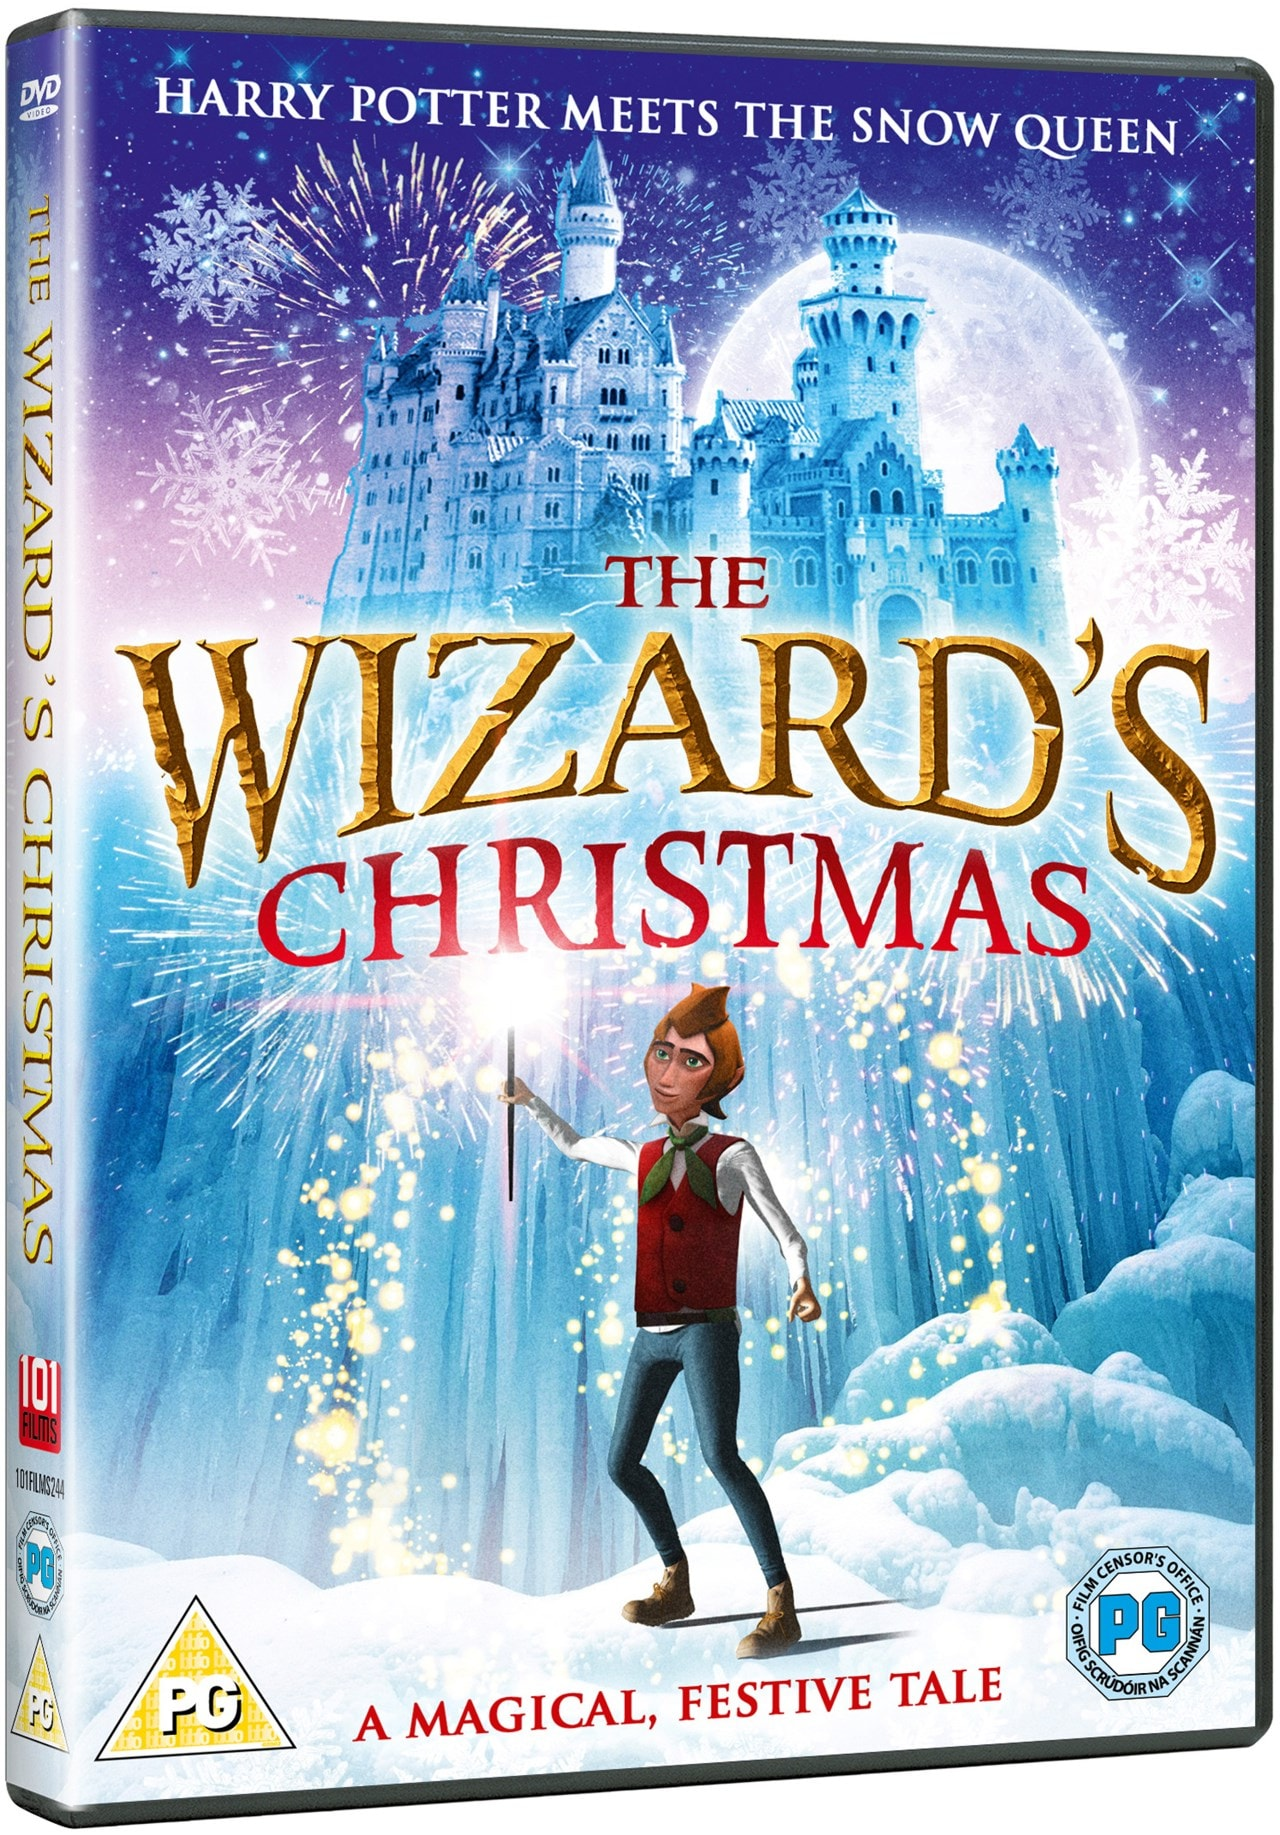 The Wizard's Christmas - 2